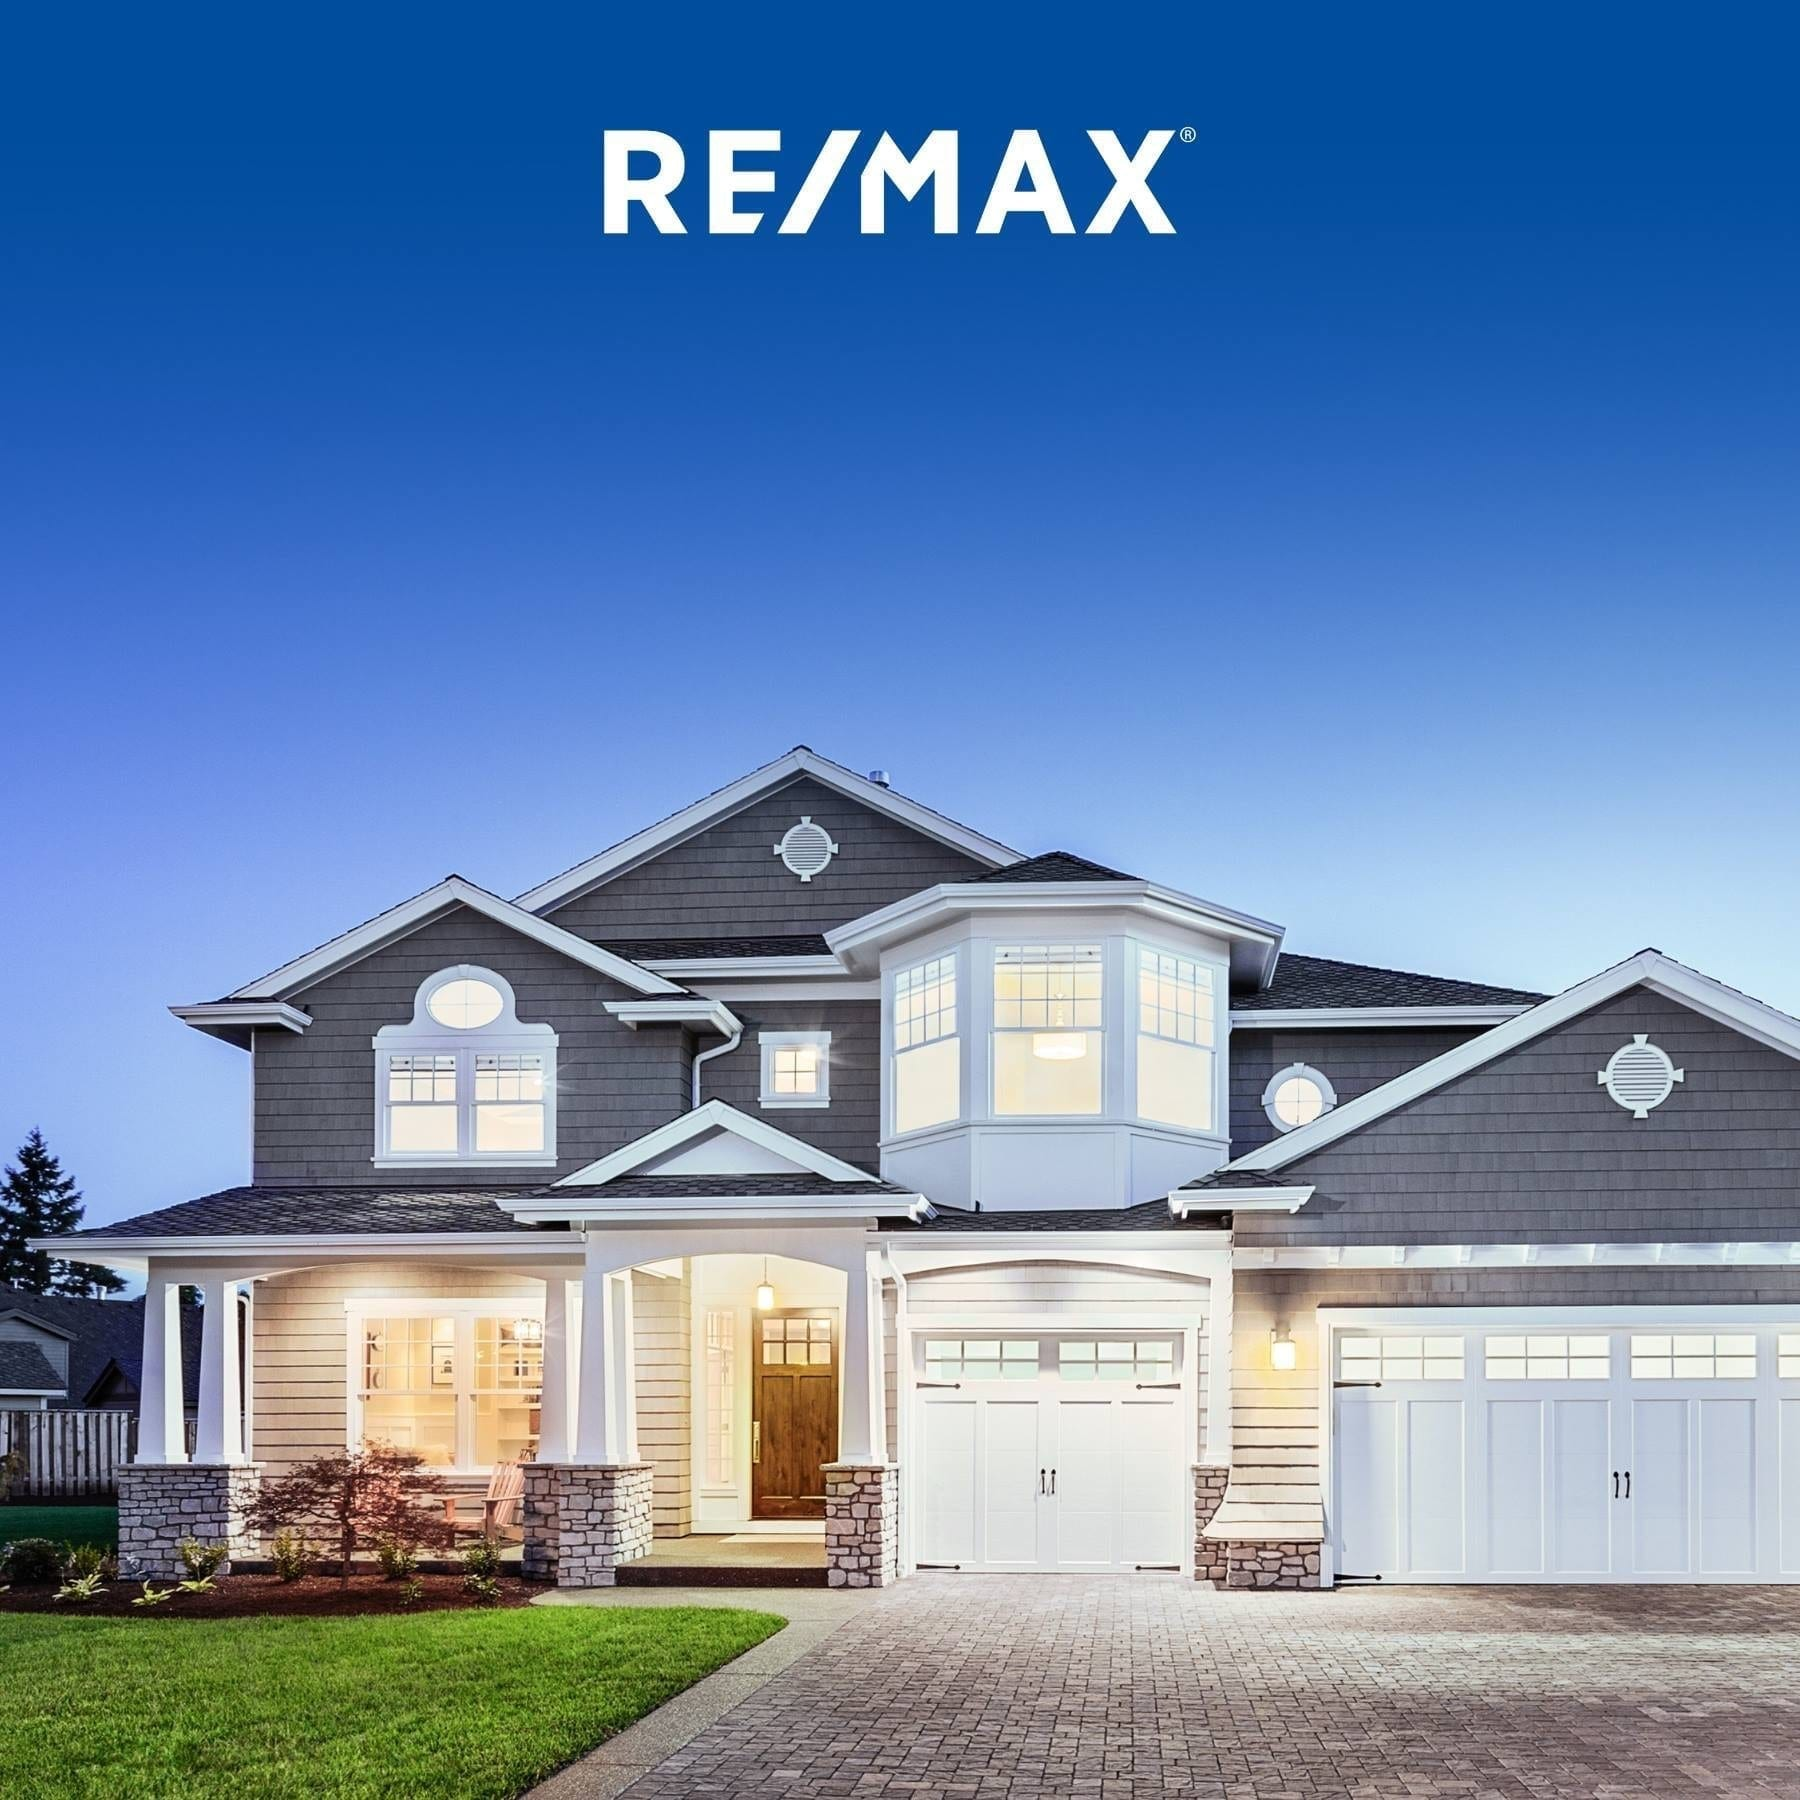 RE/MAX With Exclusive Listing